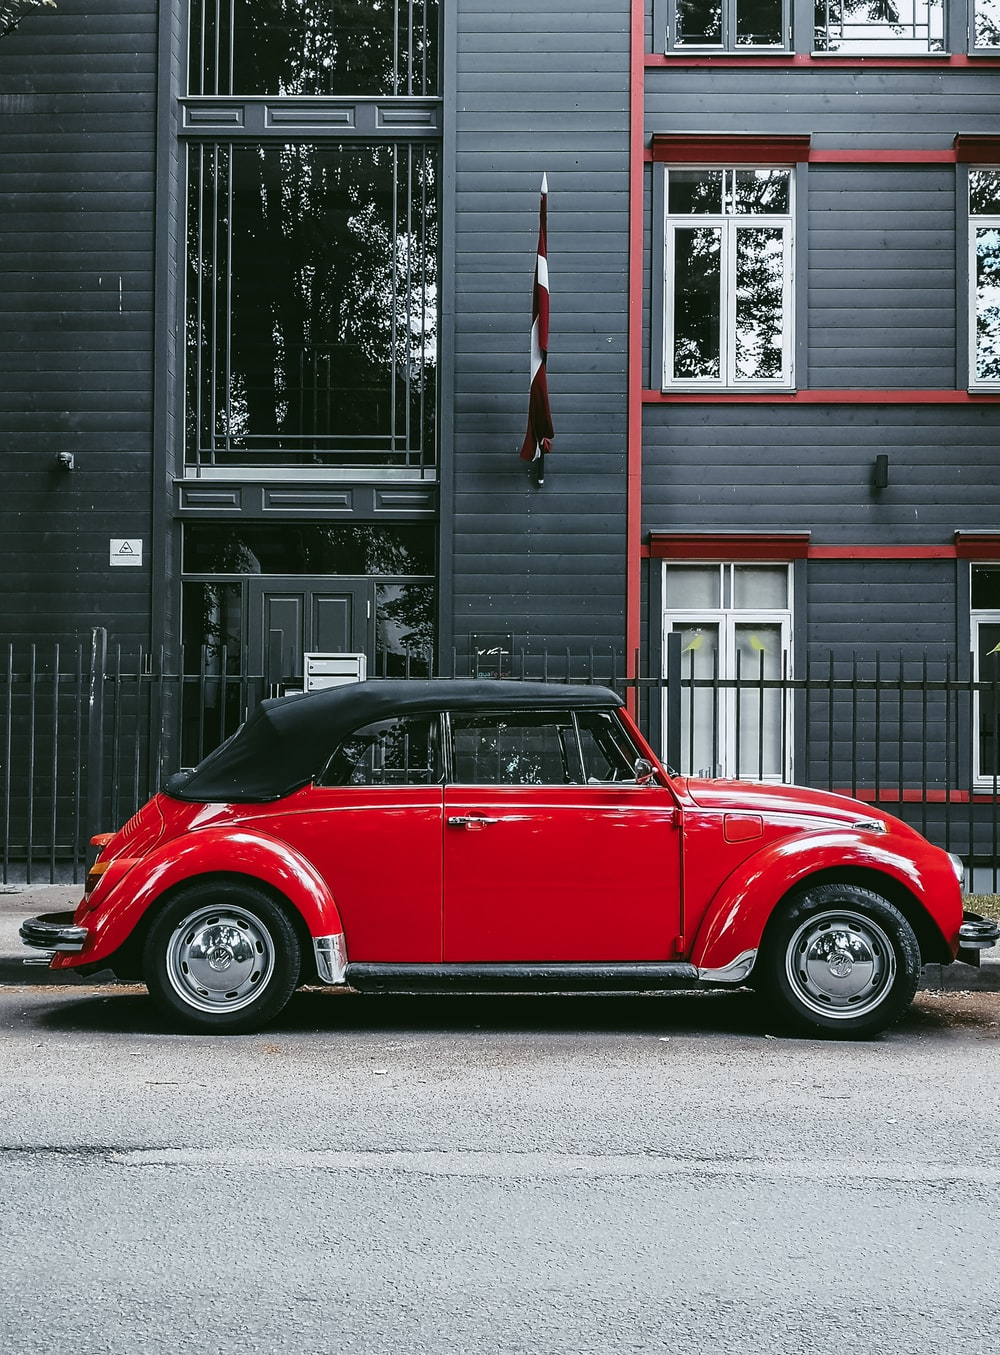 red car parked beside white and gray house